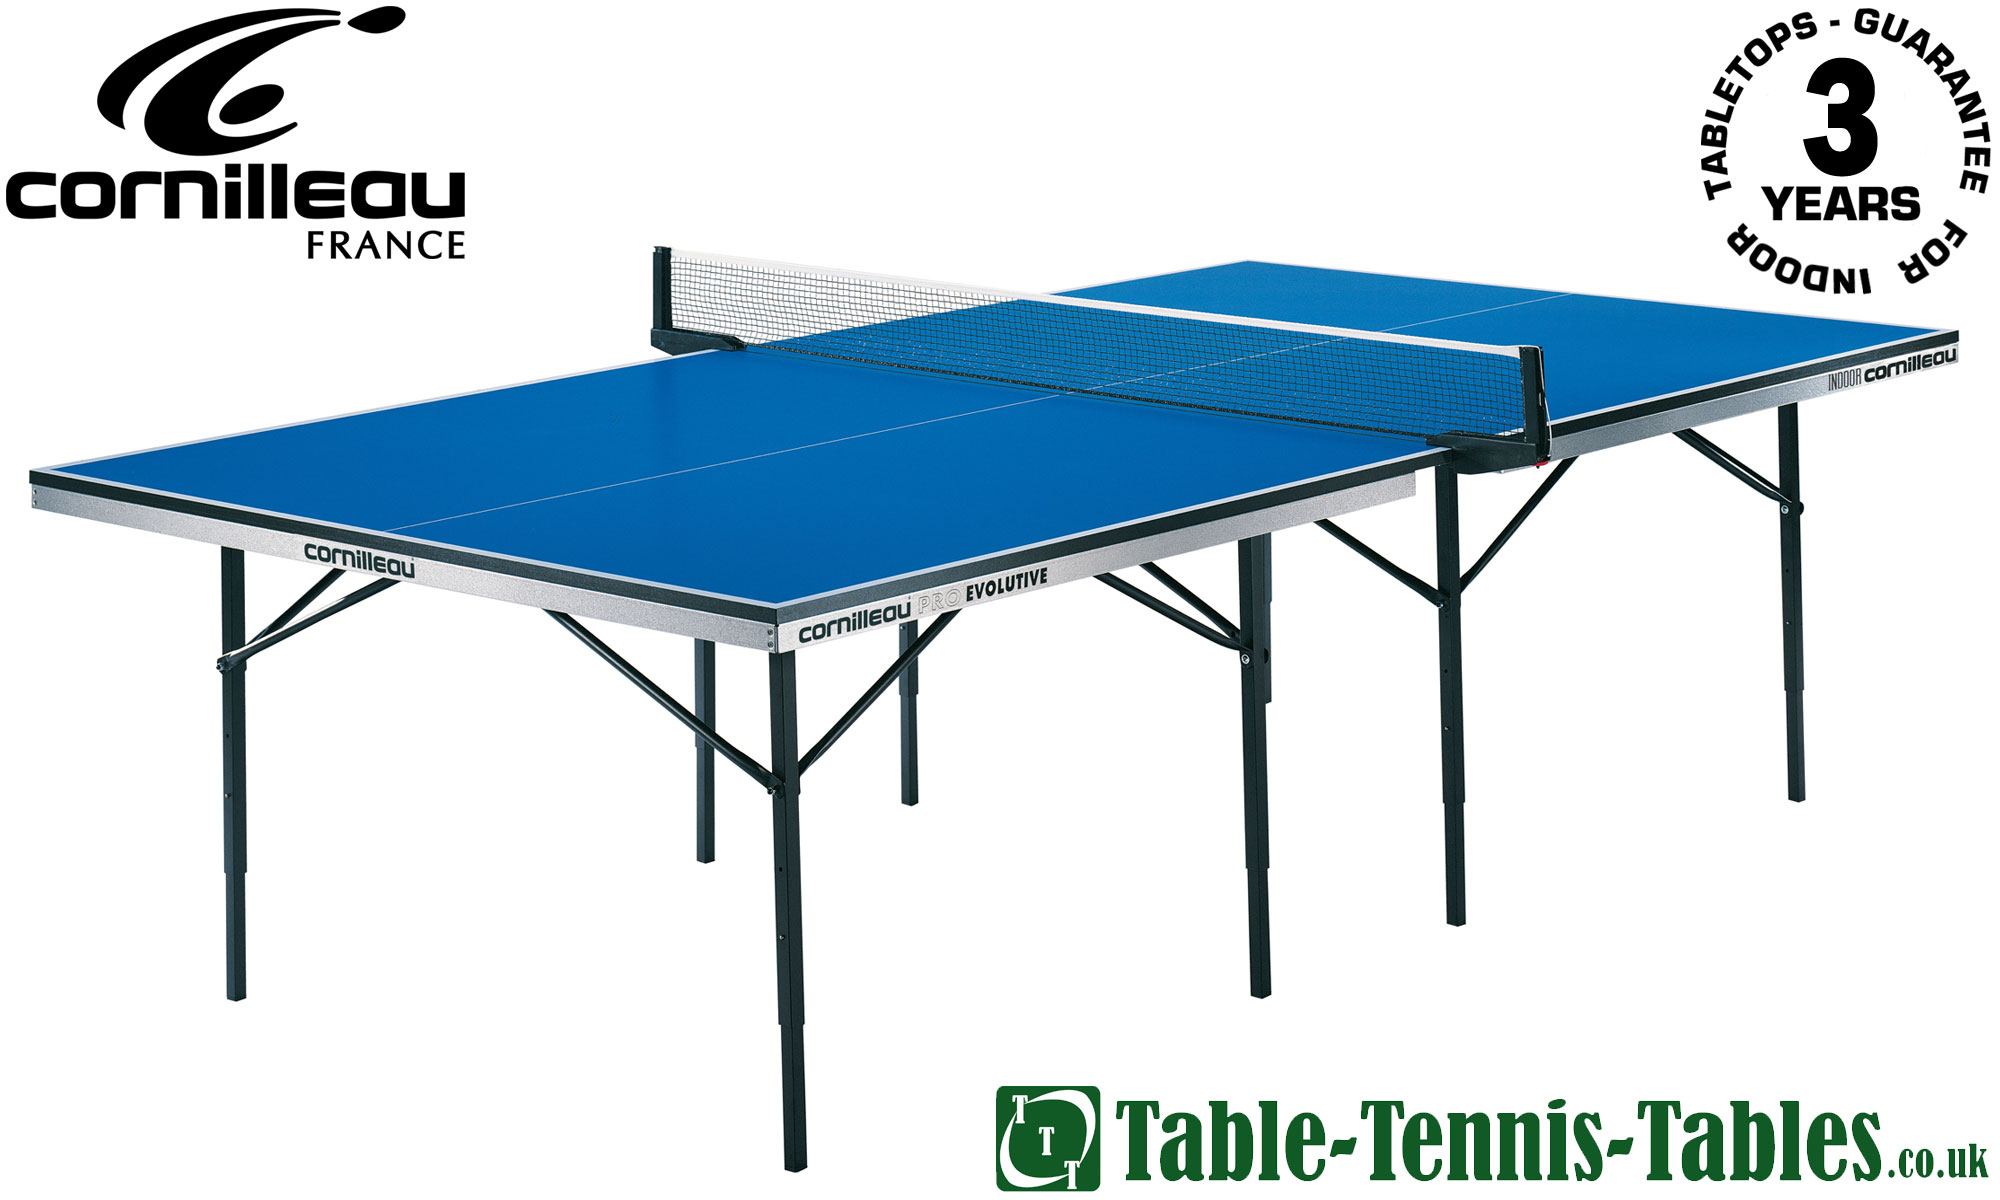 Cornilleau evolutive static 3 in 1 table discontinued - Full size table tennis table dimensions ...